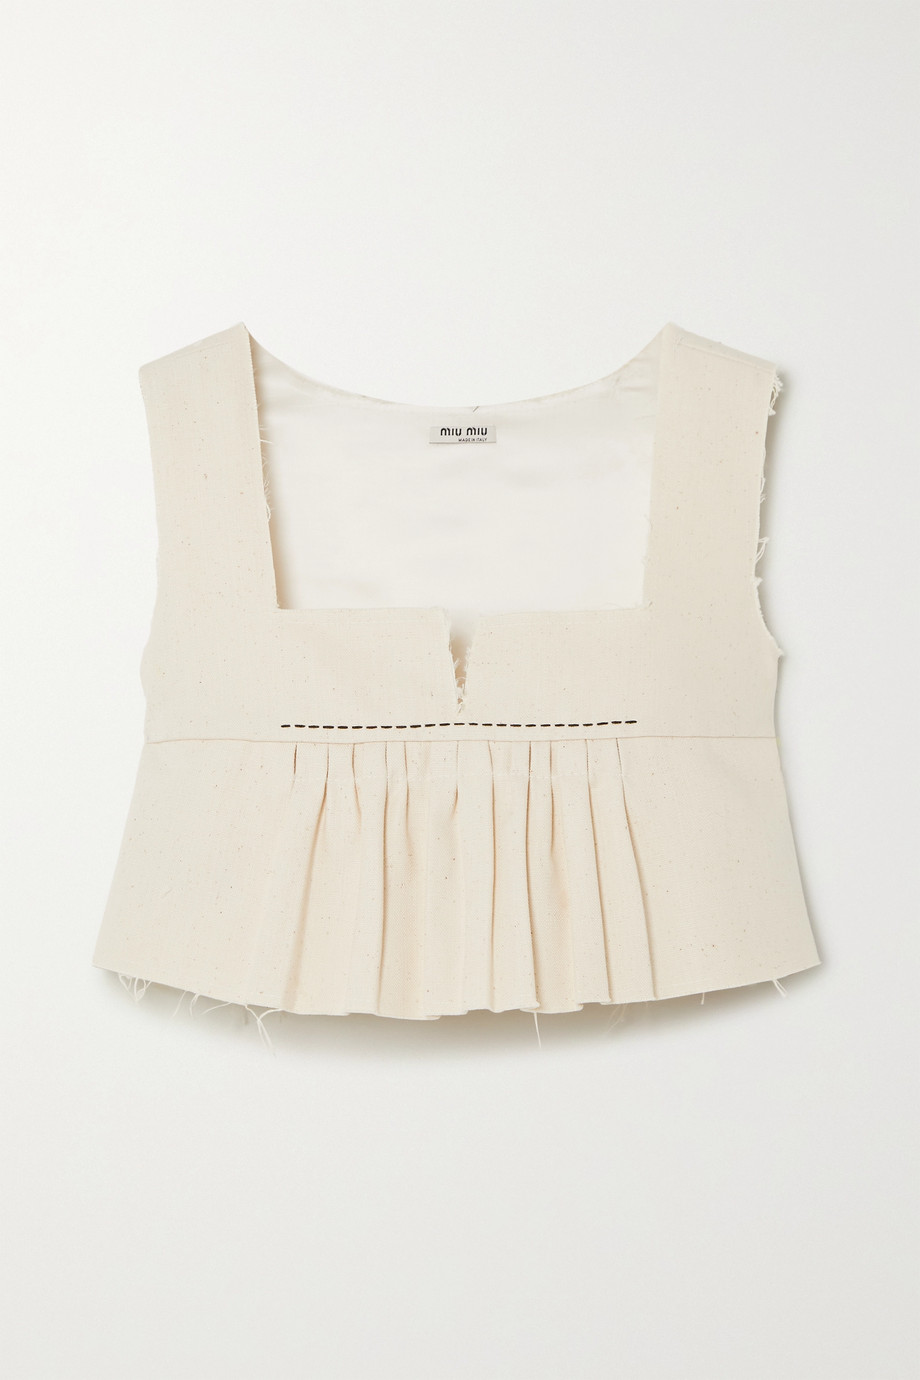 Miu Miu Cropped frayed cotton-canvas peplum top